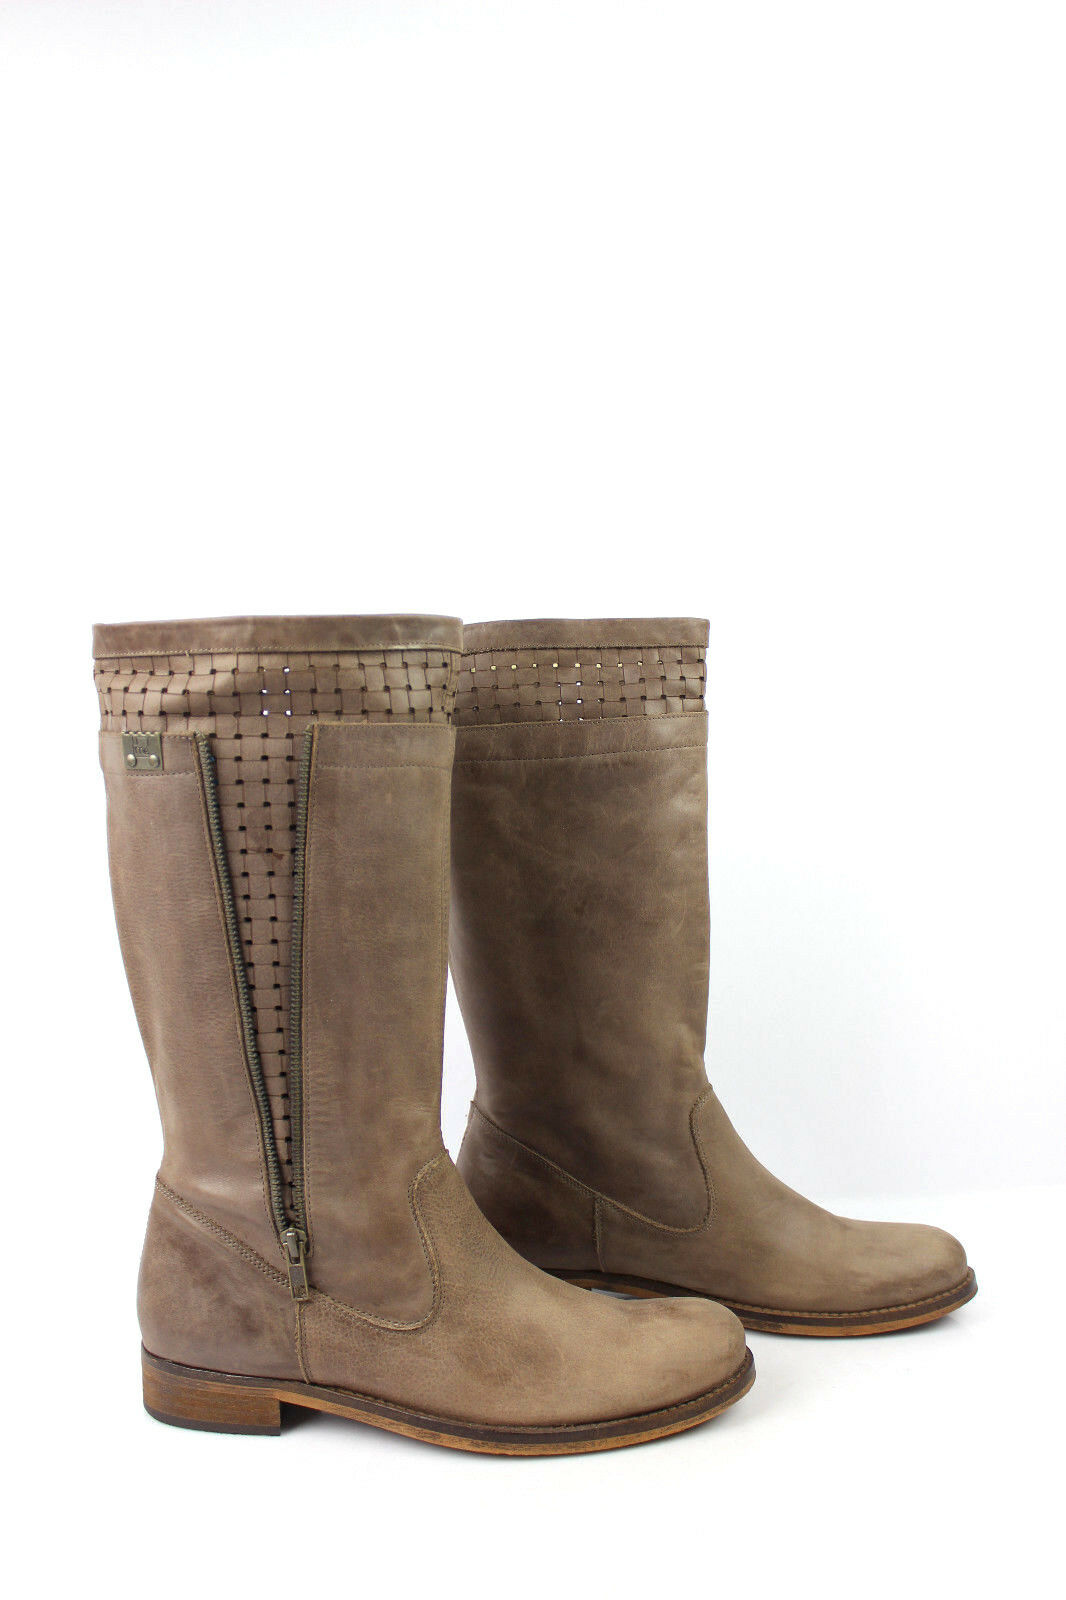 Boots UME A MATIN SUMMER Leather Taupe Clear T 40 VERY GOOD CONDITION